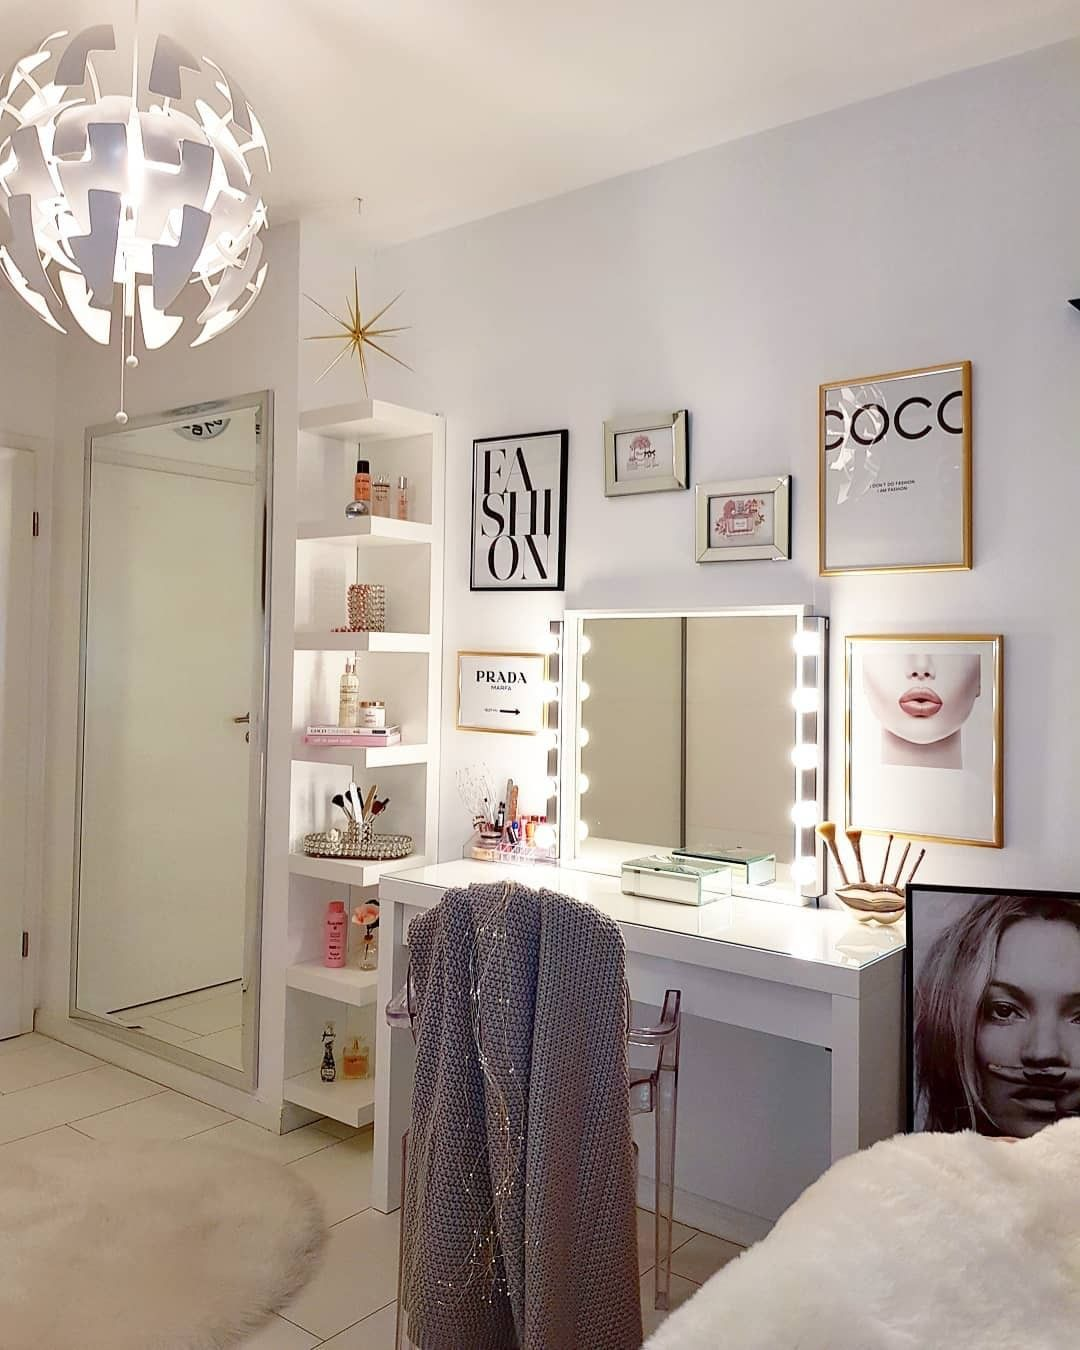 We Love Homebytulay S Beauty Room Set Up Using The Malm Dressing Table Lack Wall Shelf Unit Nisse Shelf Decor Bedroom Malm Dressing Table Home Decor Bedroom